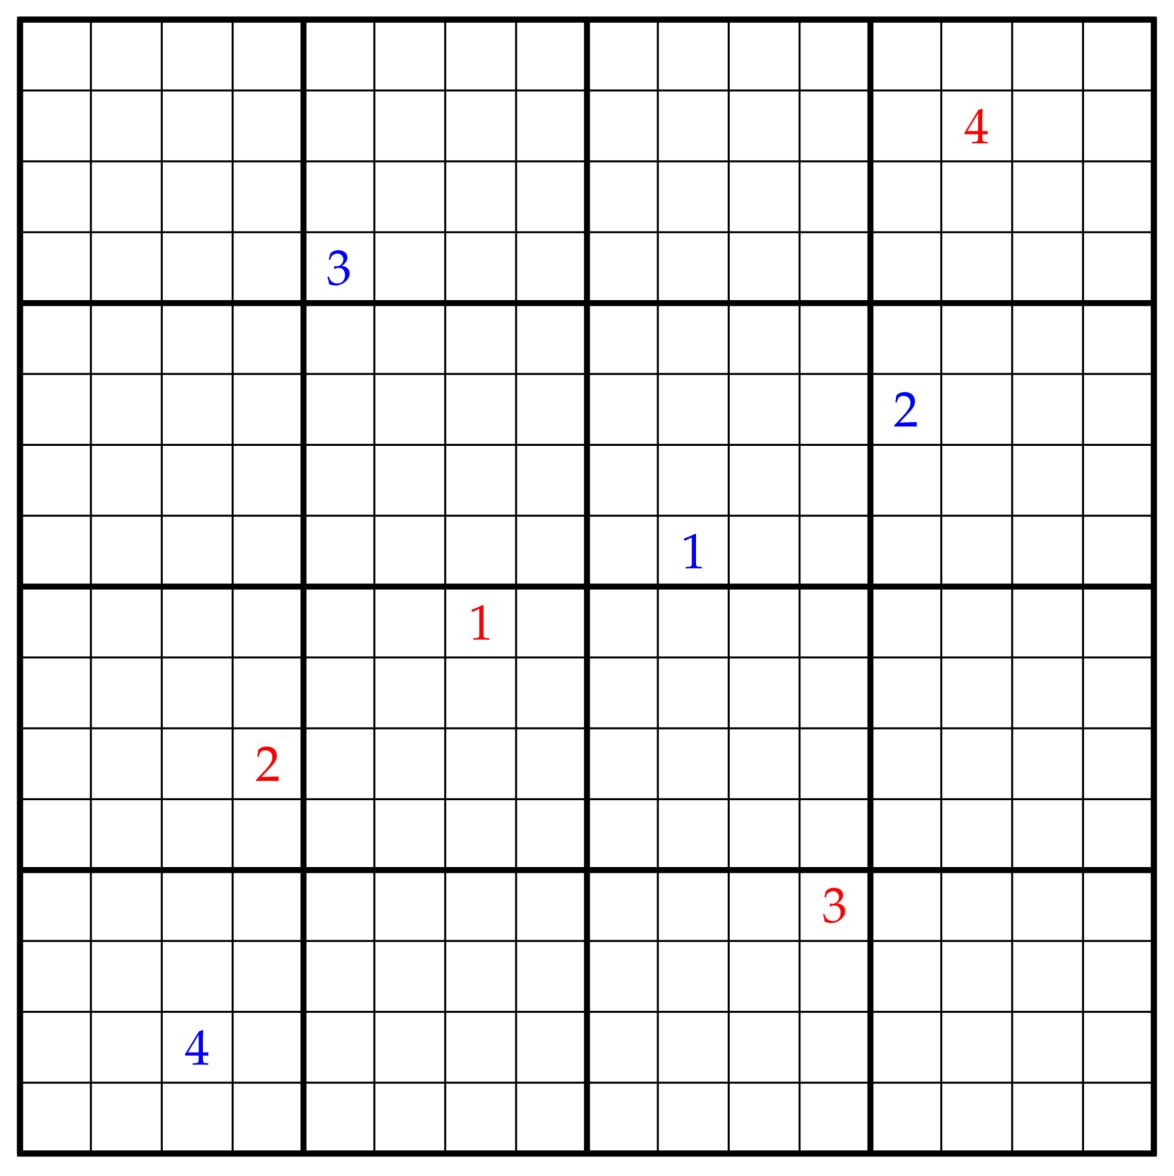 photograph relating to Jigsaw Sudoku Printable identified as Limitless Sudoku and the Sudoku video game Joel David Hamkins